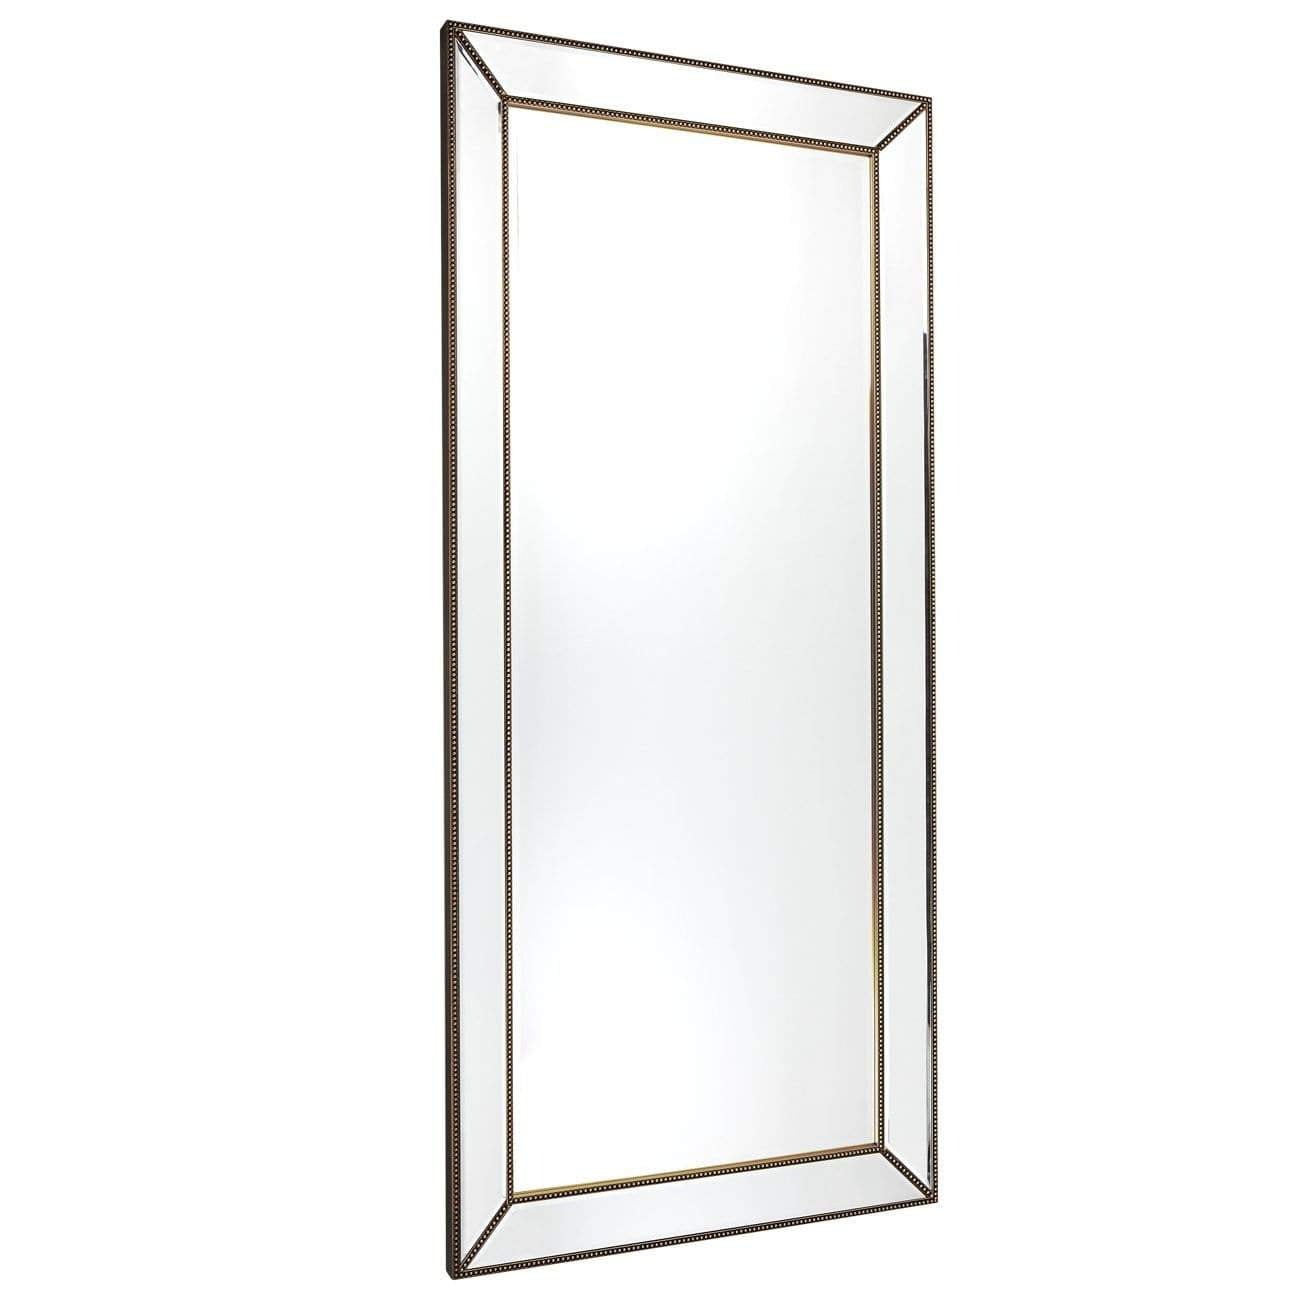 Zeta Floor Mirror - Antique Gold | Zeta Mirrors | Luxury Mirrors Sydney